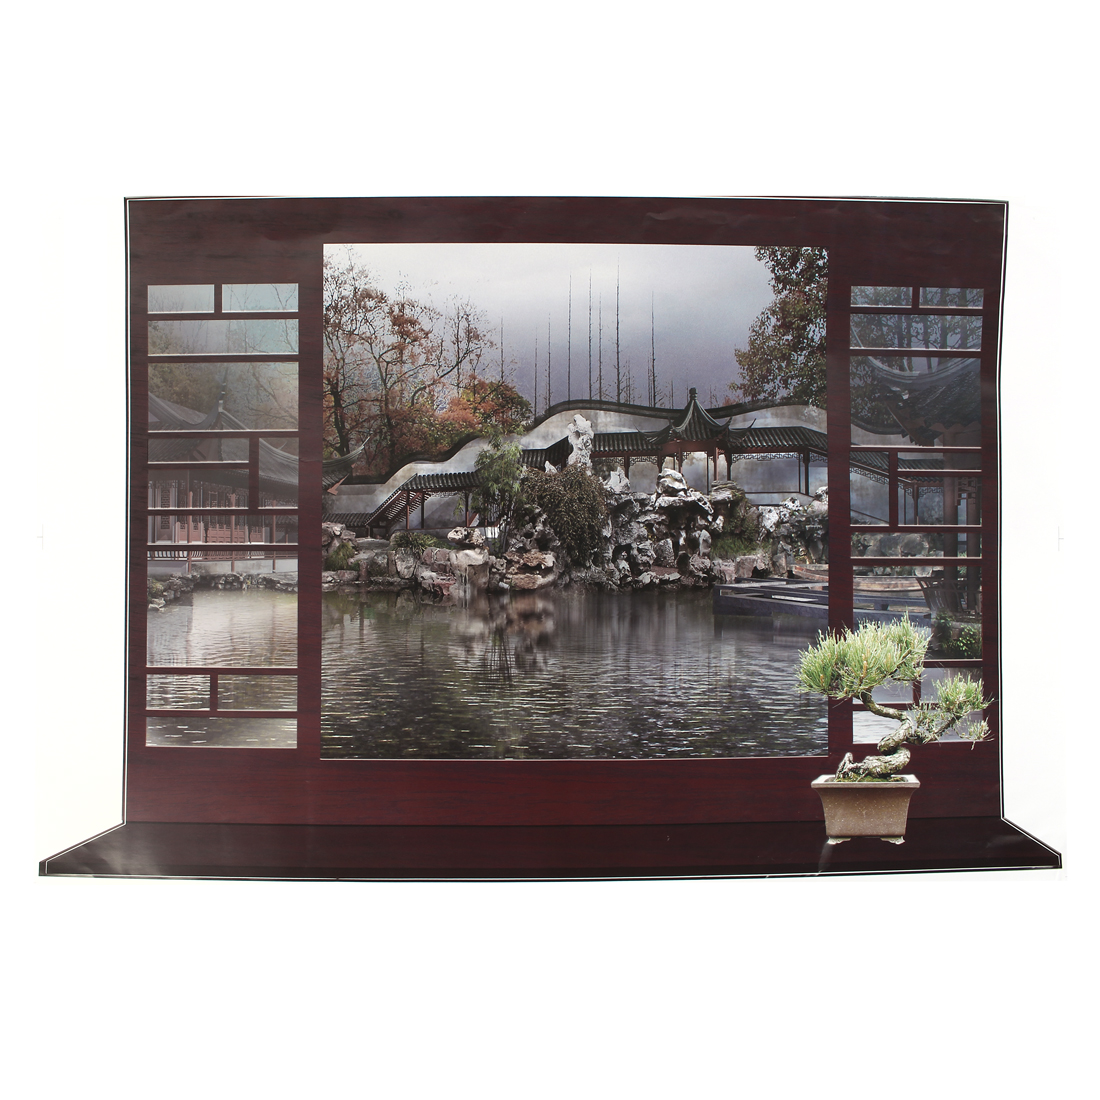 Unique Bargains Home Wall Decor 3D Effect Fake Window Chinese Landscape Pattern Wall Sticker Decal